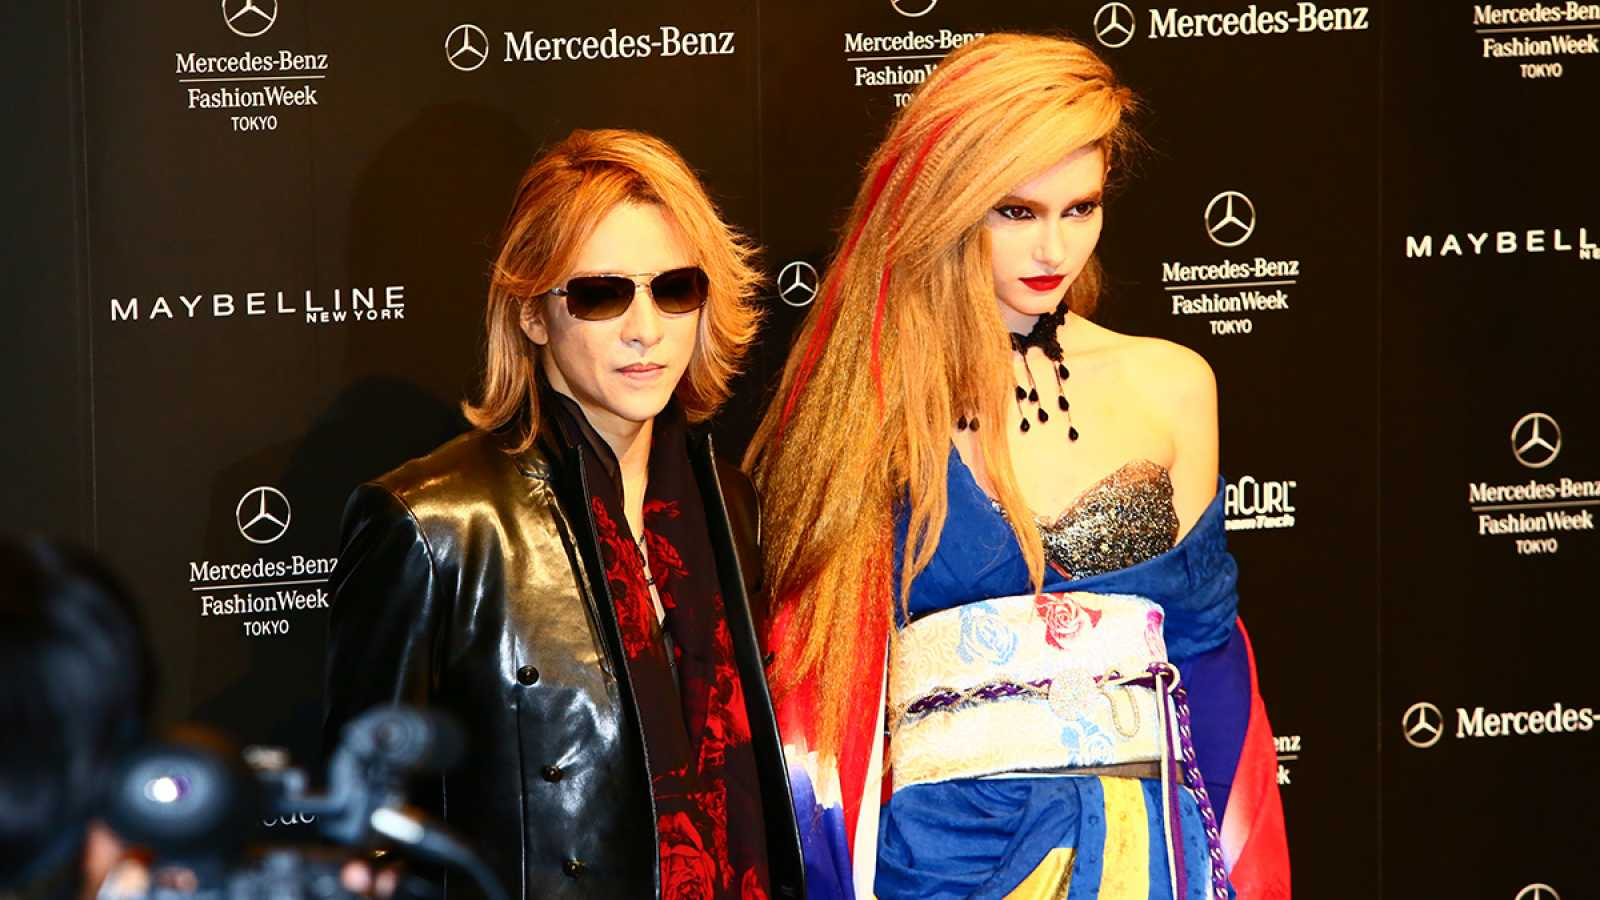 YOSHIKIMONO to Feature in V&A Museum Exhibition © YOSHIKI. All rights reserved.